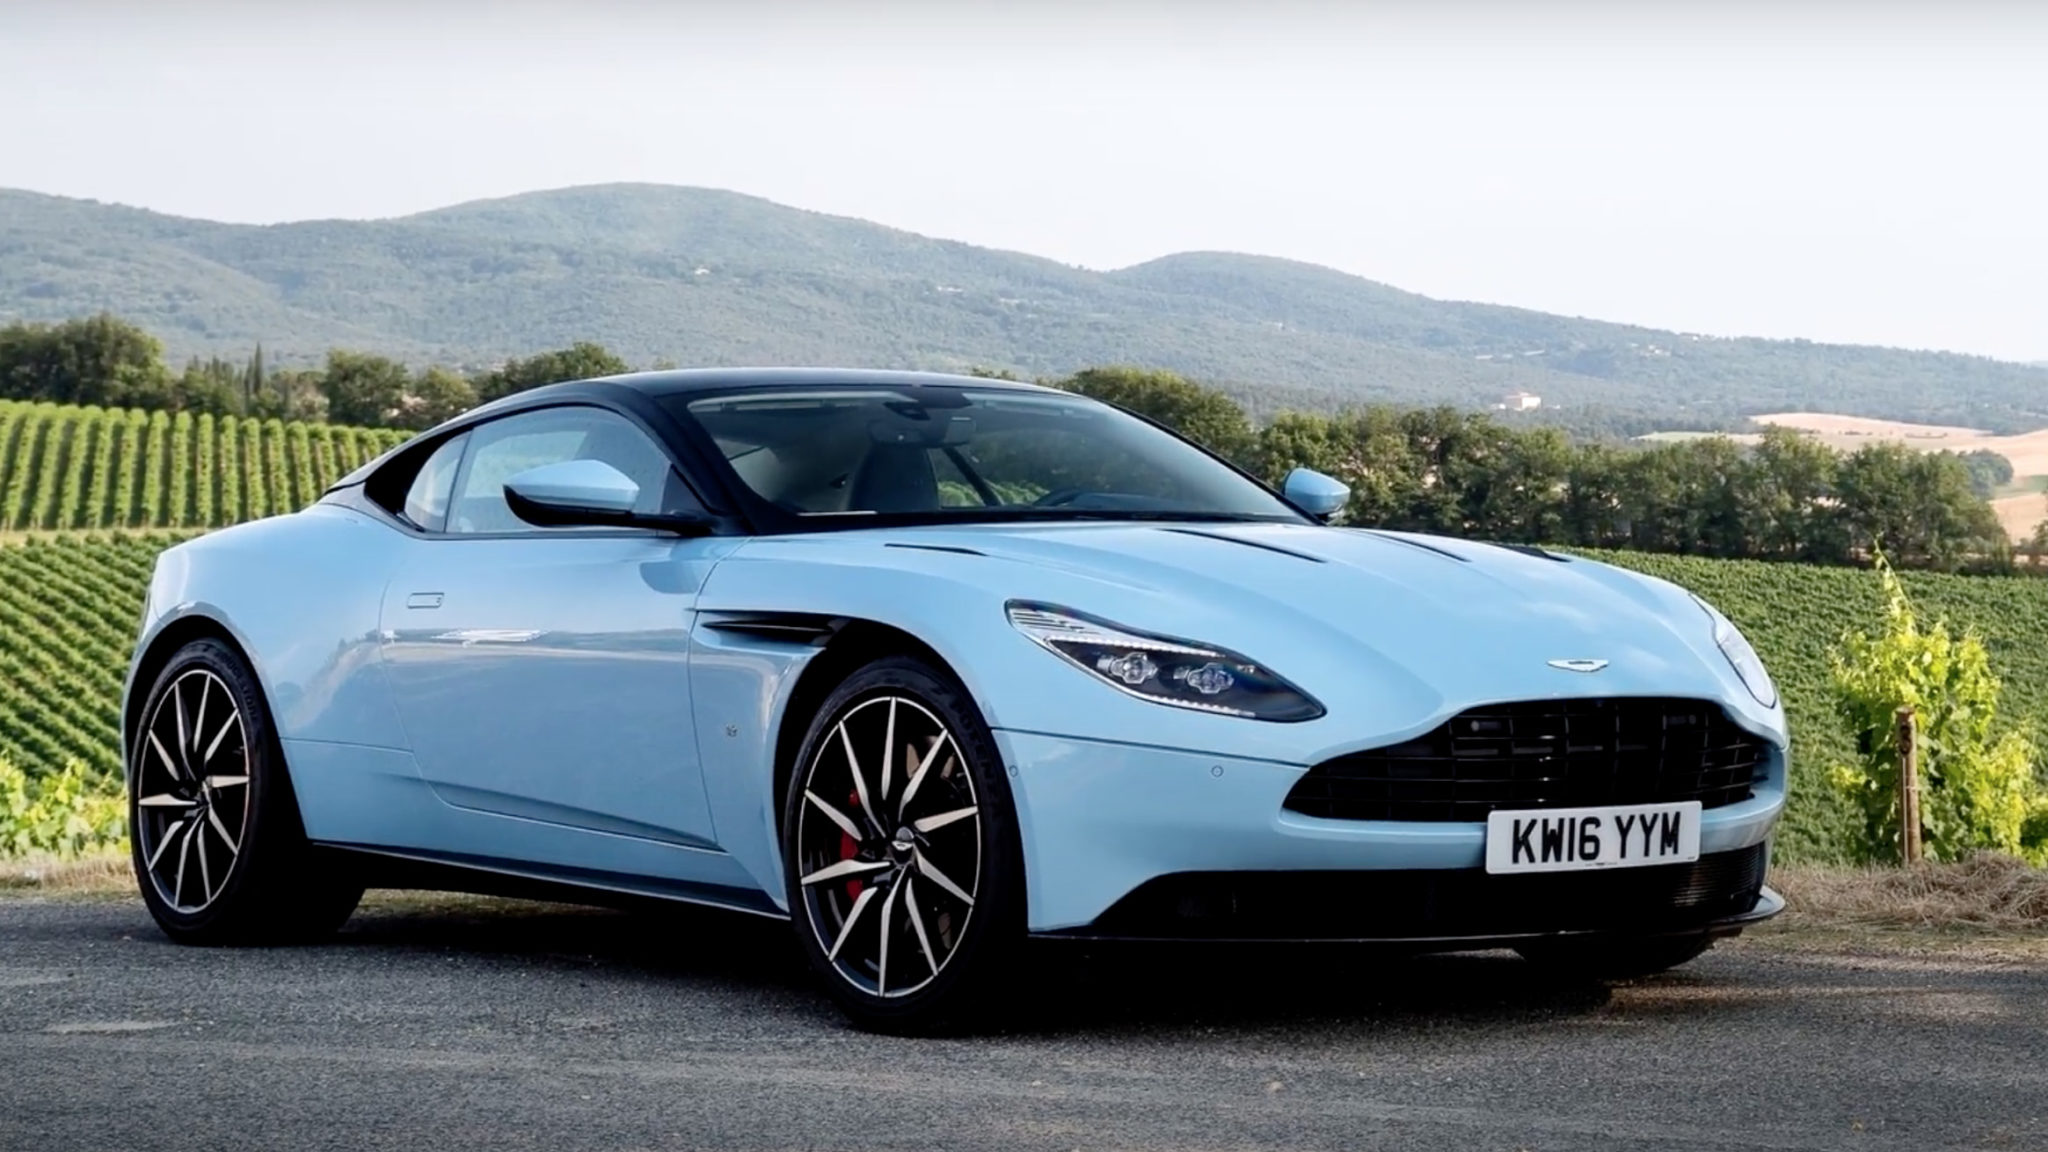 Aston Martin DB11 Frosted Blue